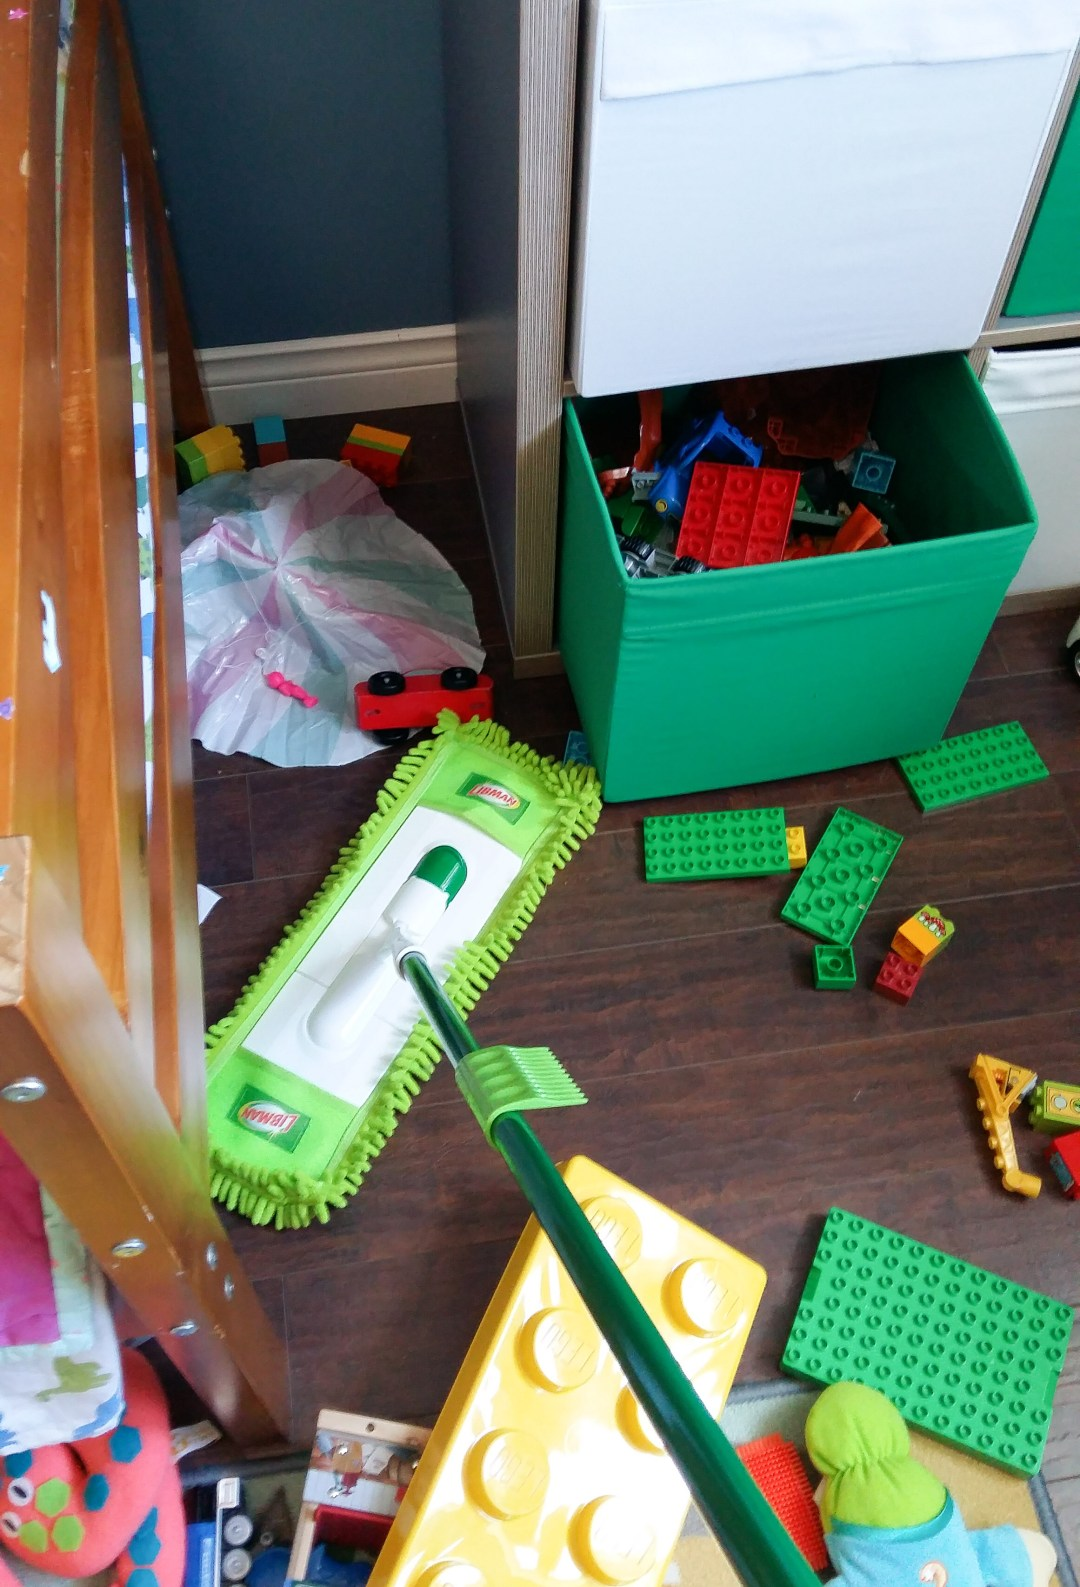 I just shoved the toys around a bit to collect up all the dust!